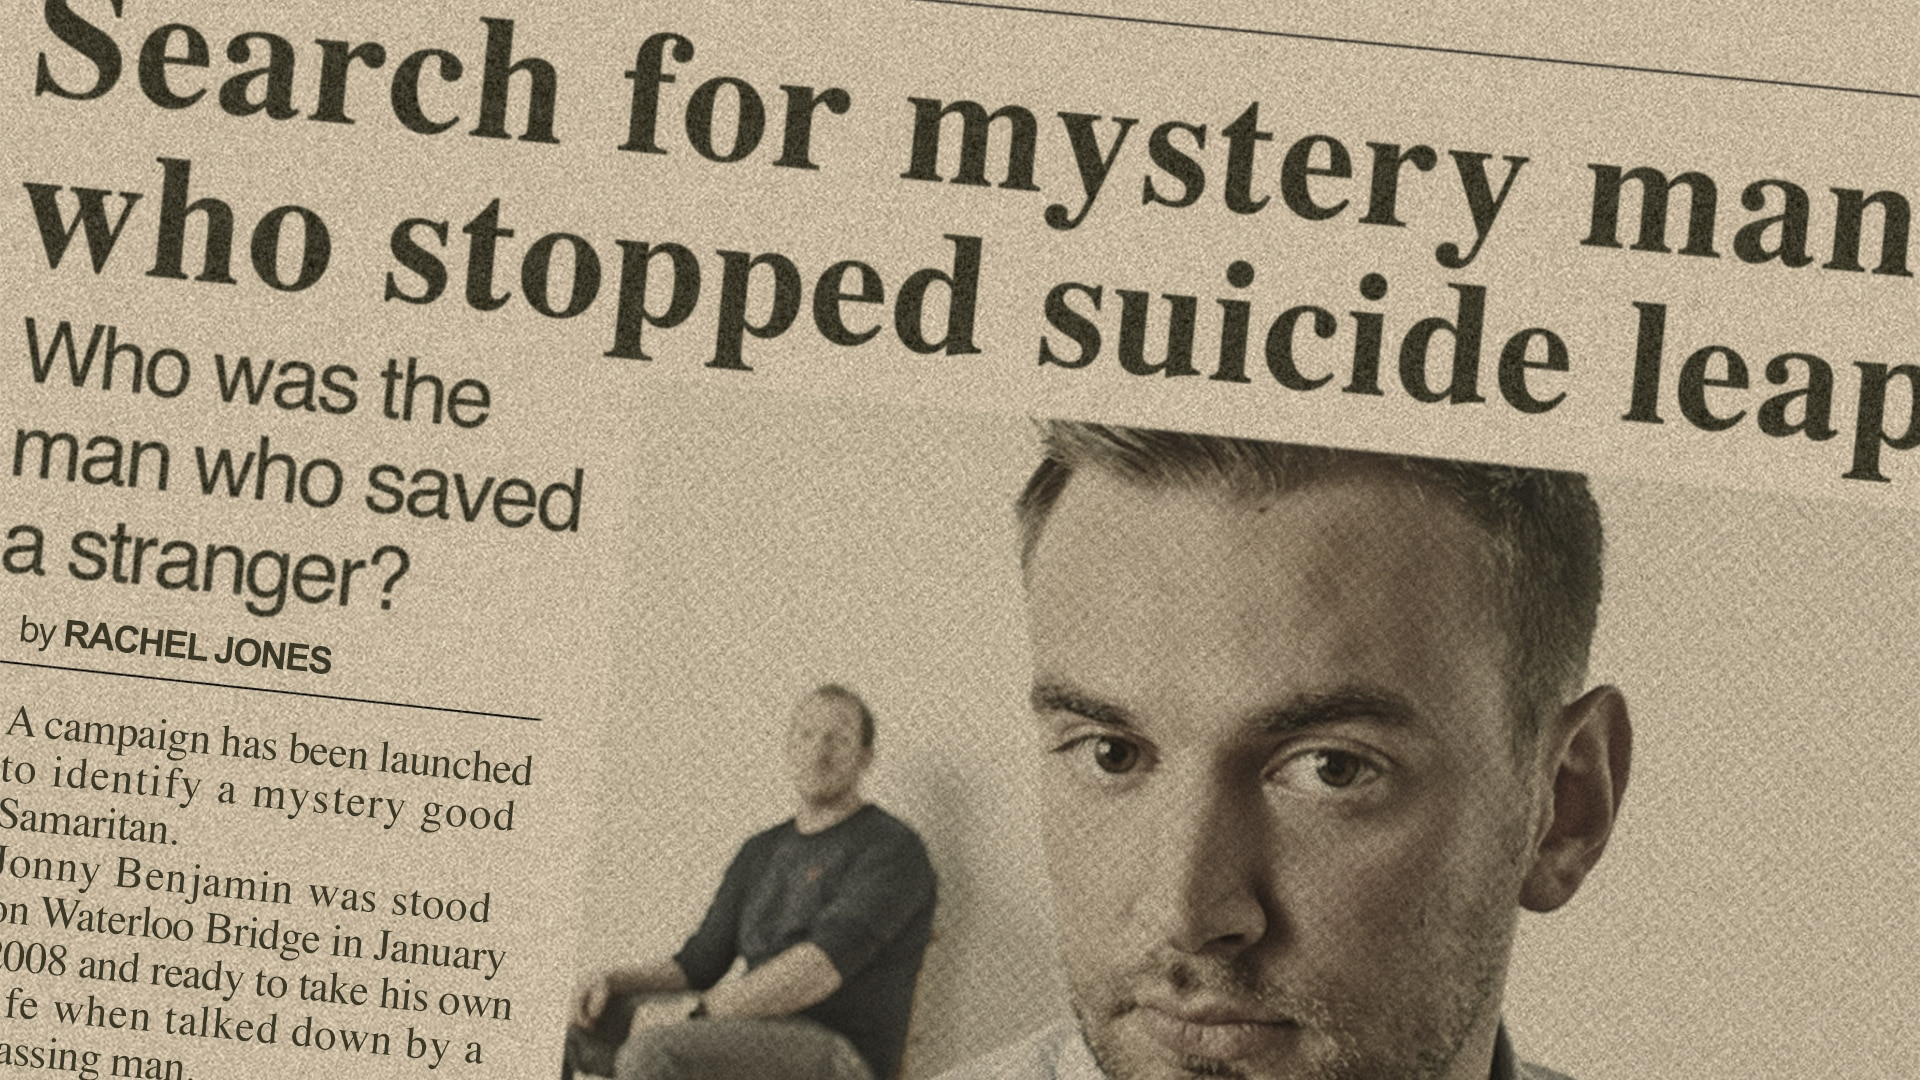 Search for mystery man who stopped suicide leap